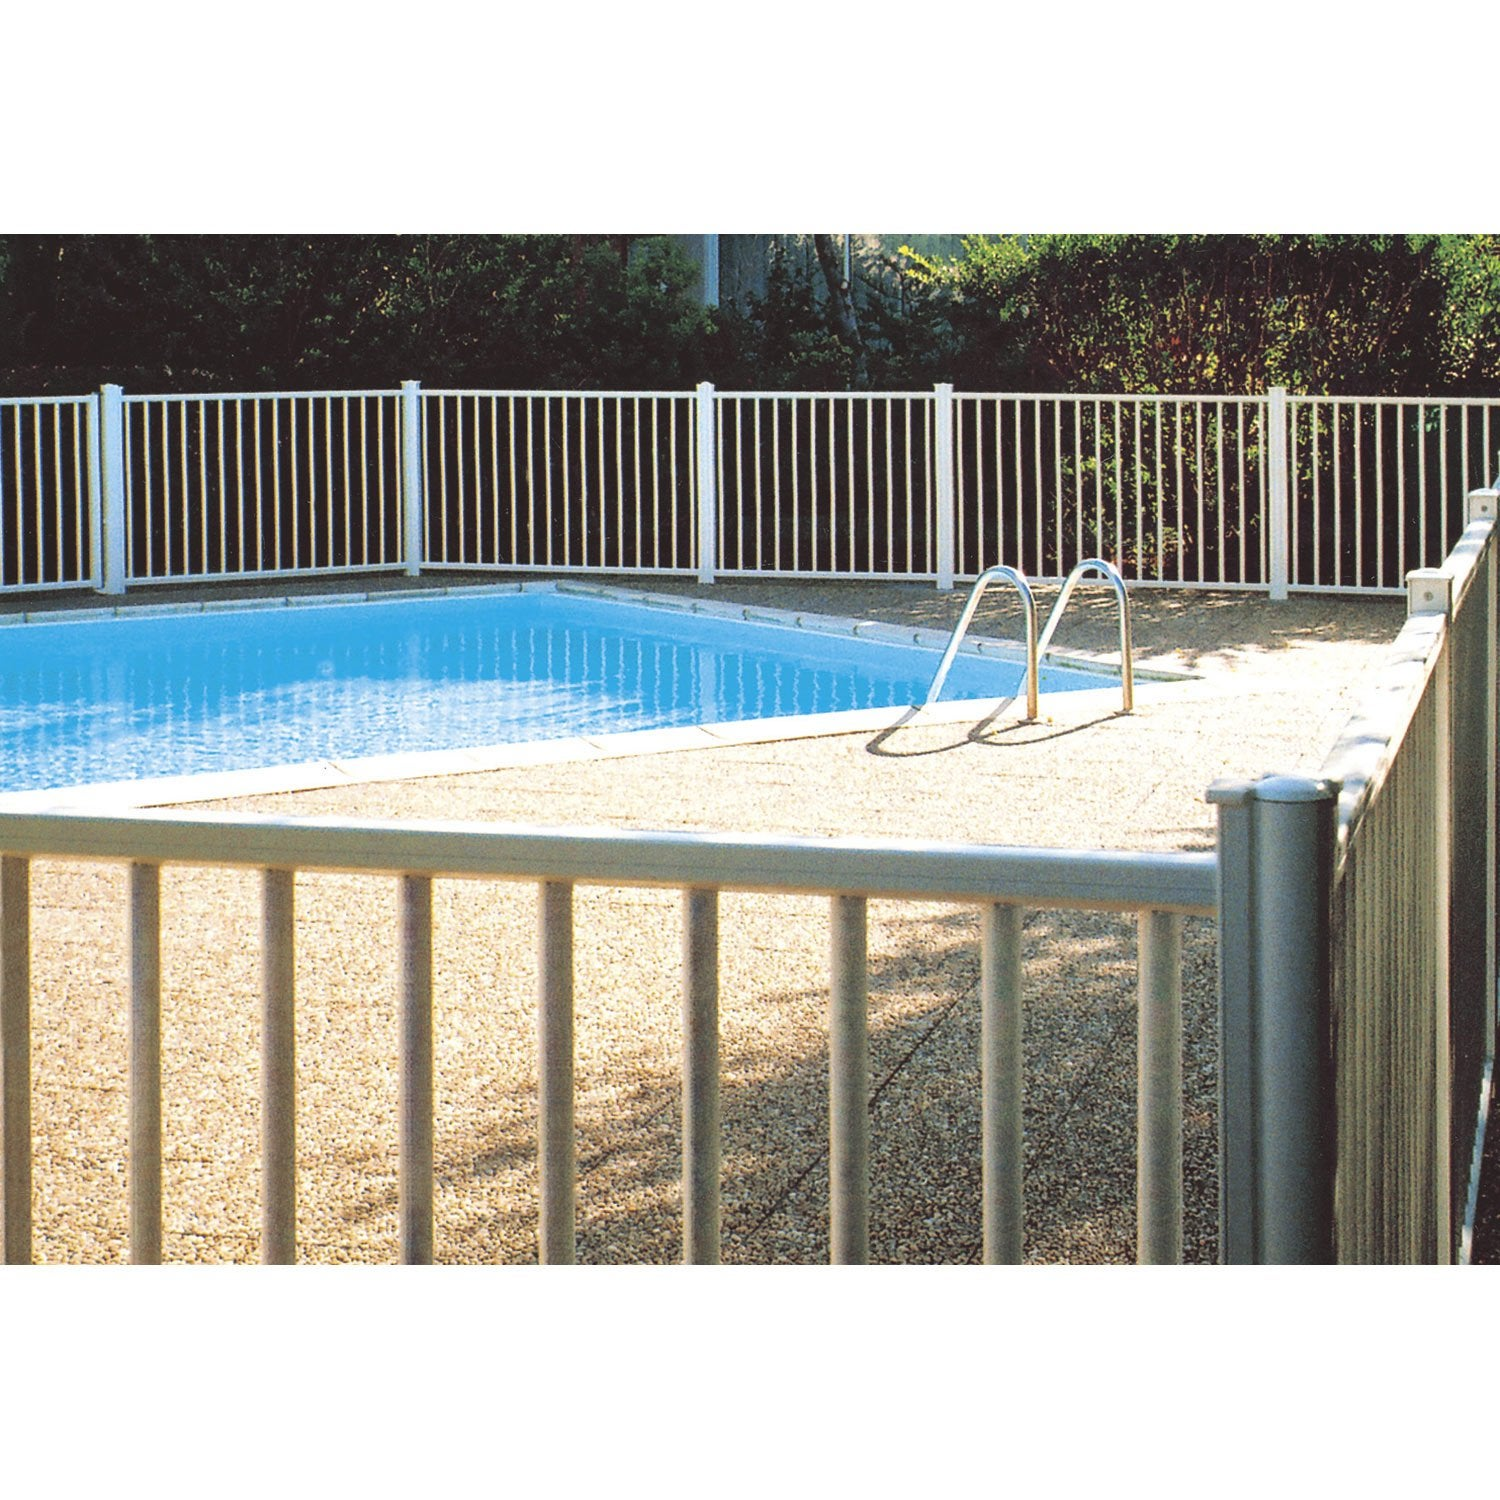 Barri re pour piscine aluminium issambres blanc 9010 h for Barrieres de protection pour piscine